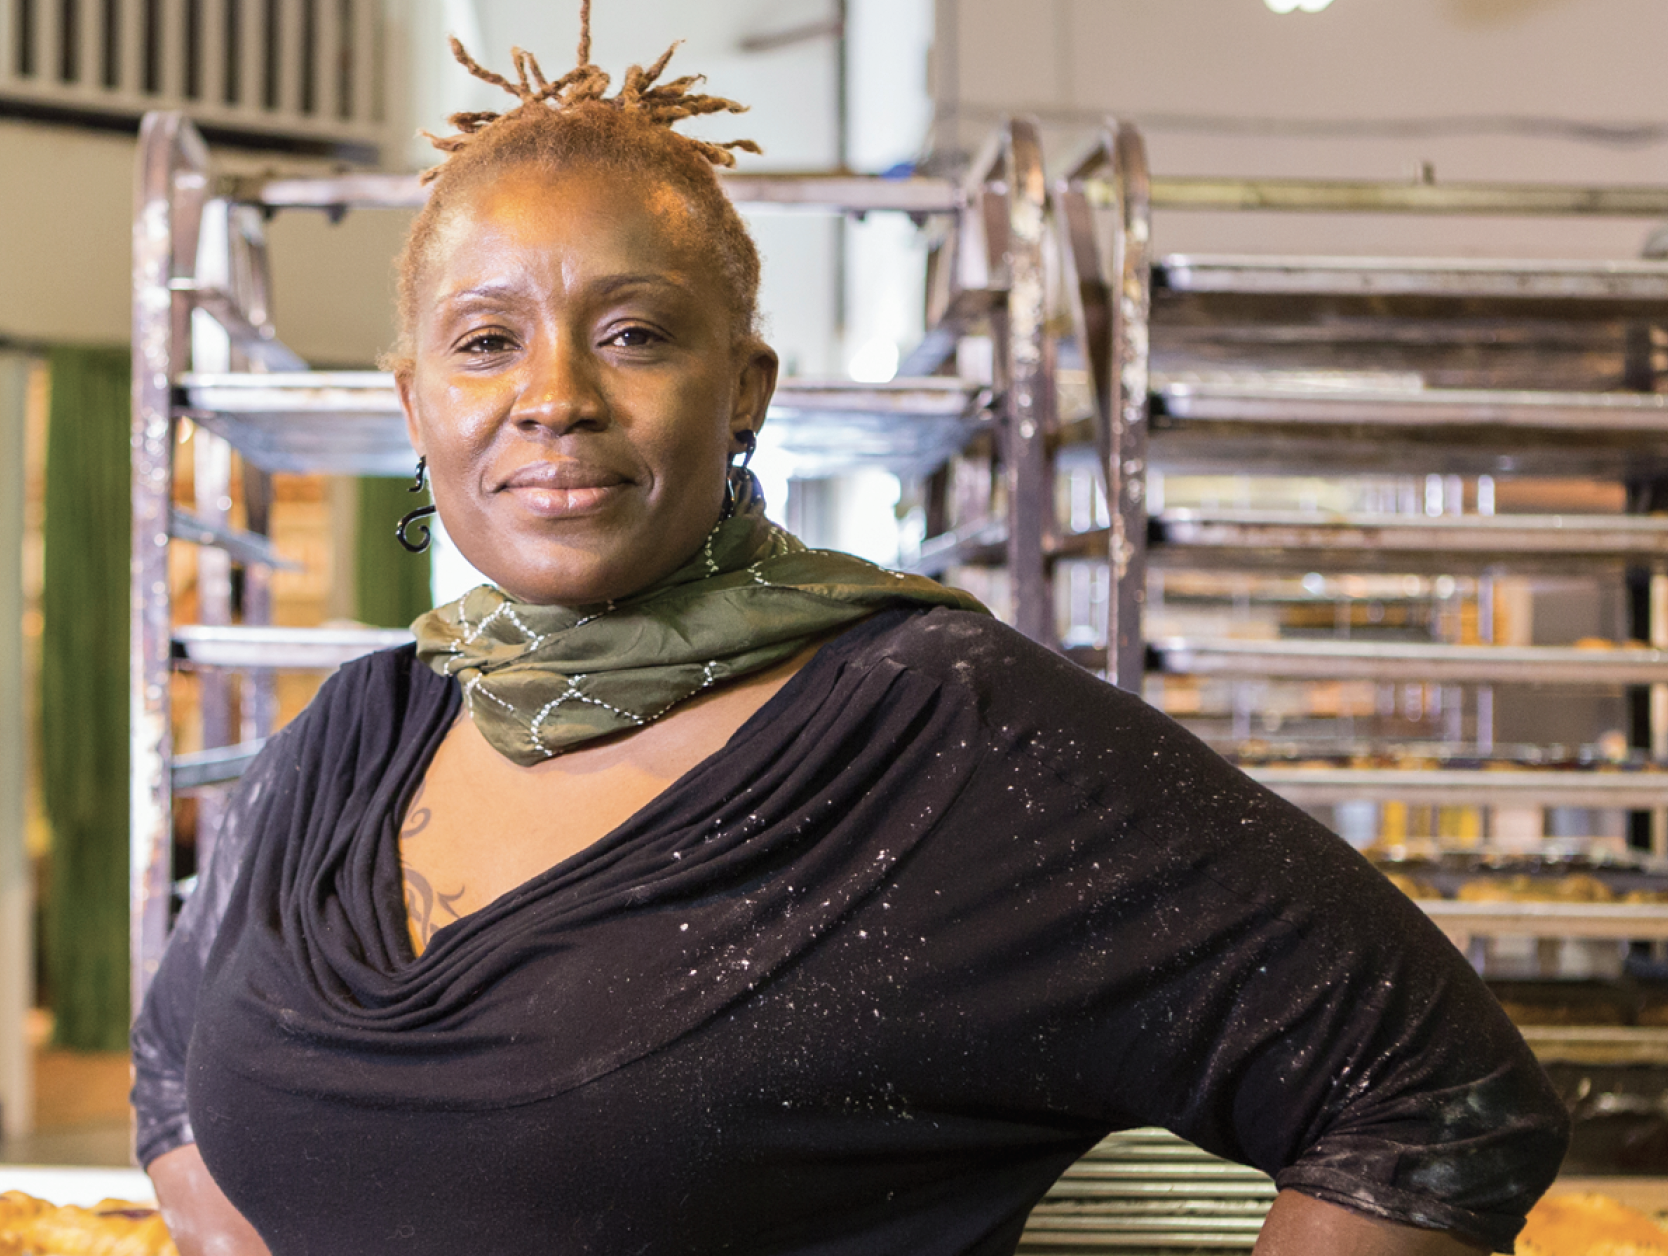 African American  woman looking into camera with a half-smile, with racks of food trays behind her.